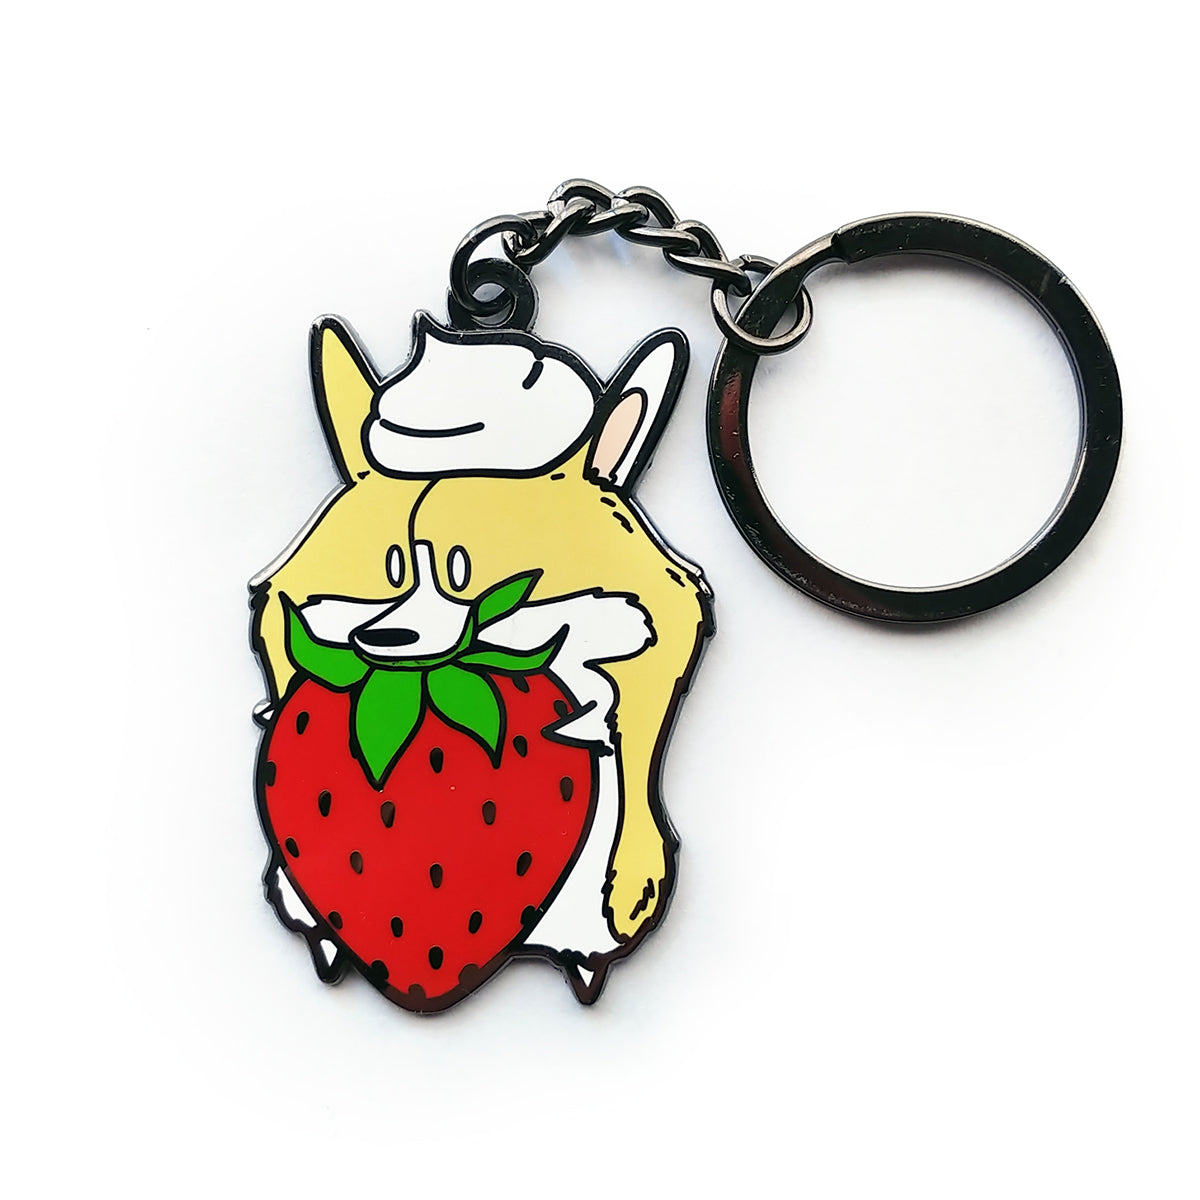 Strawberries & Cream Keychain.